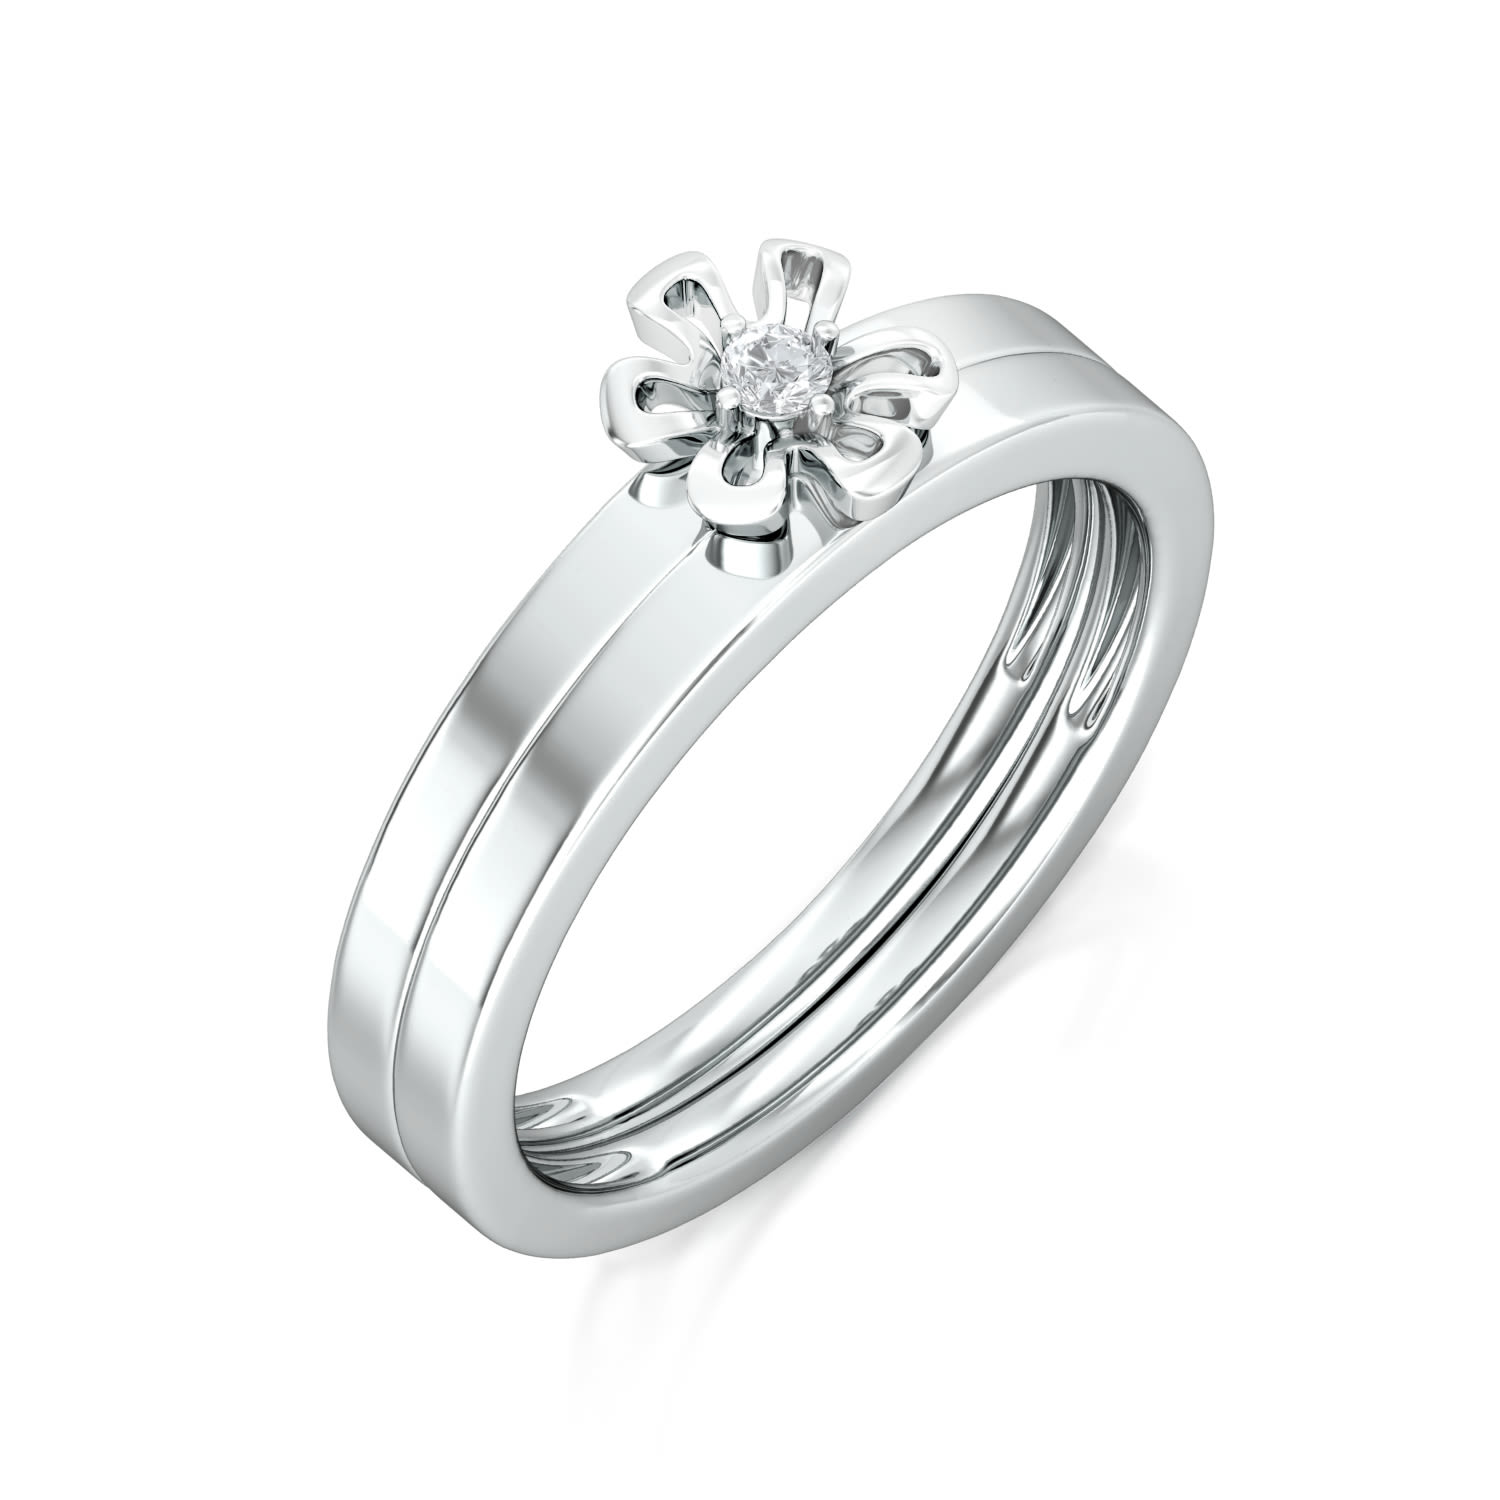 Forget-Me-Not Diamond Rings